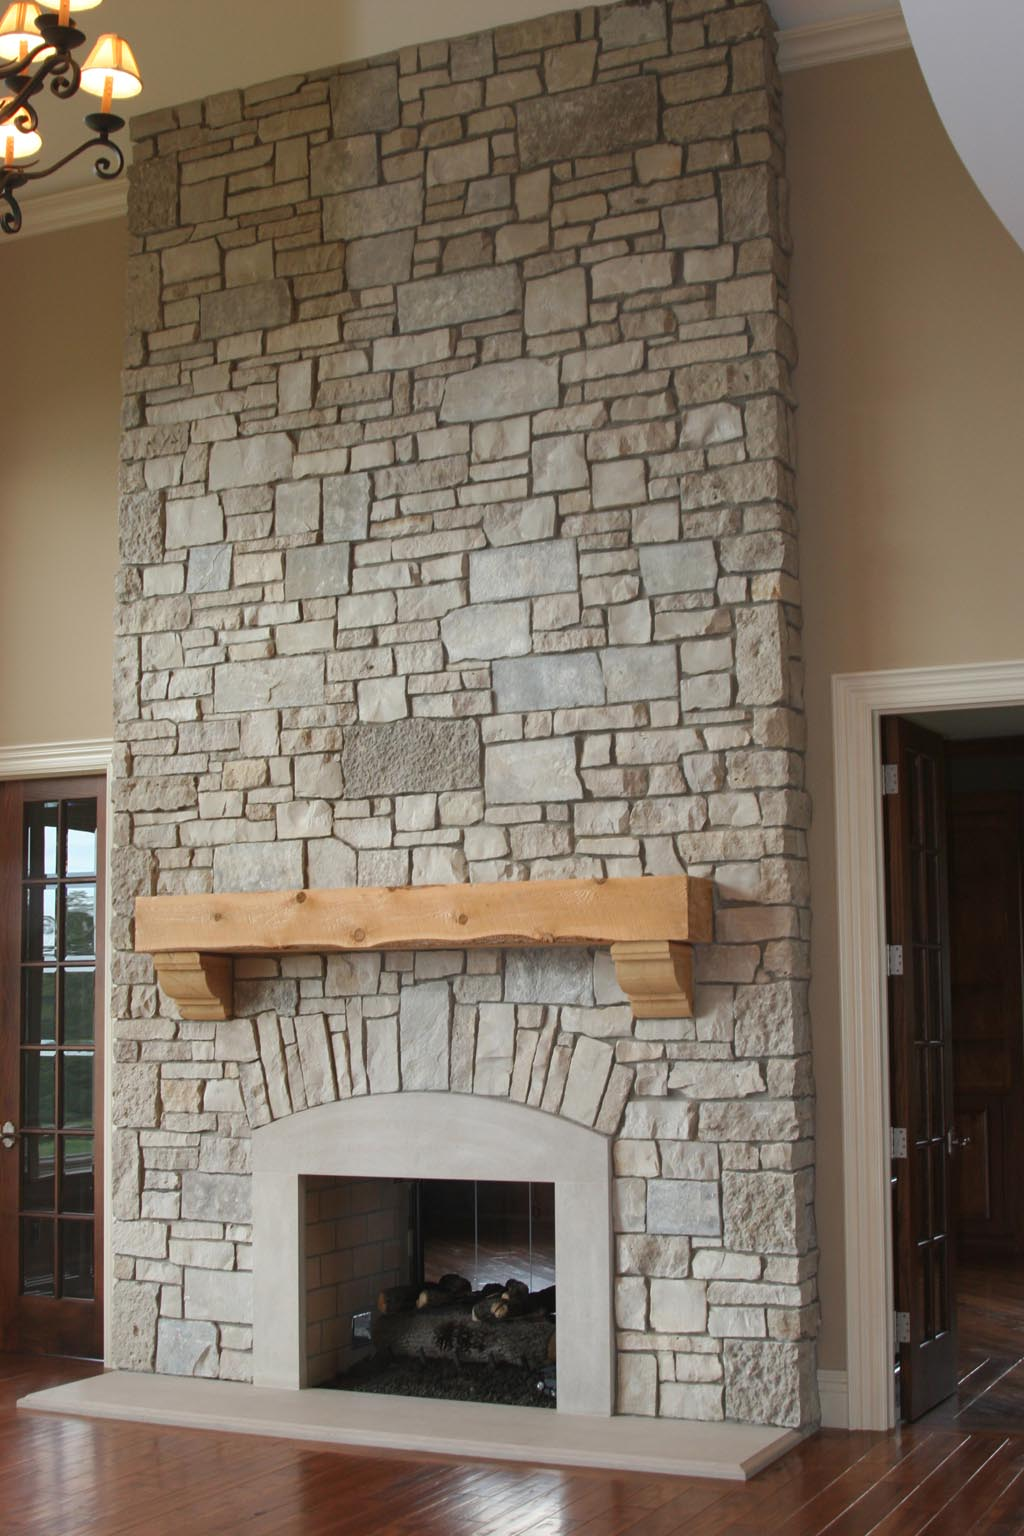 fake stone fireplace images fireplace designs rh bestfireplacedesigns com